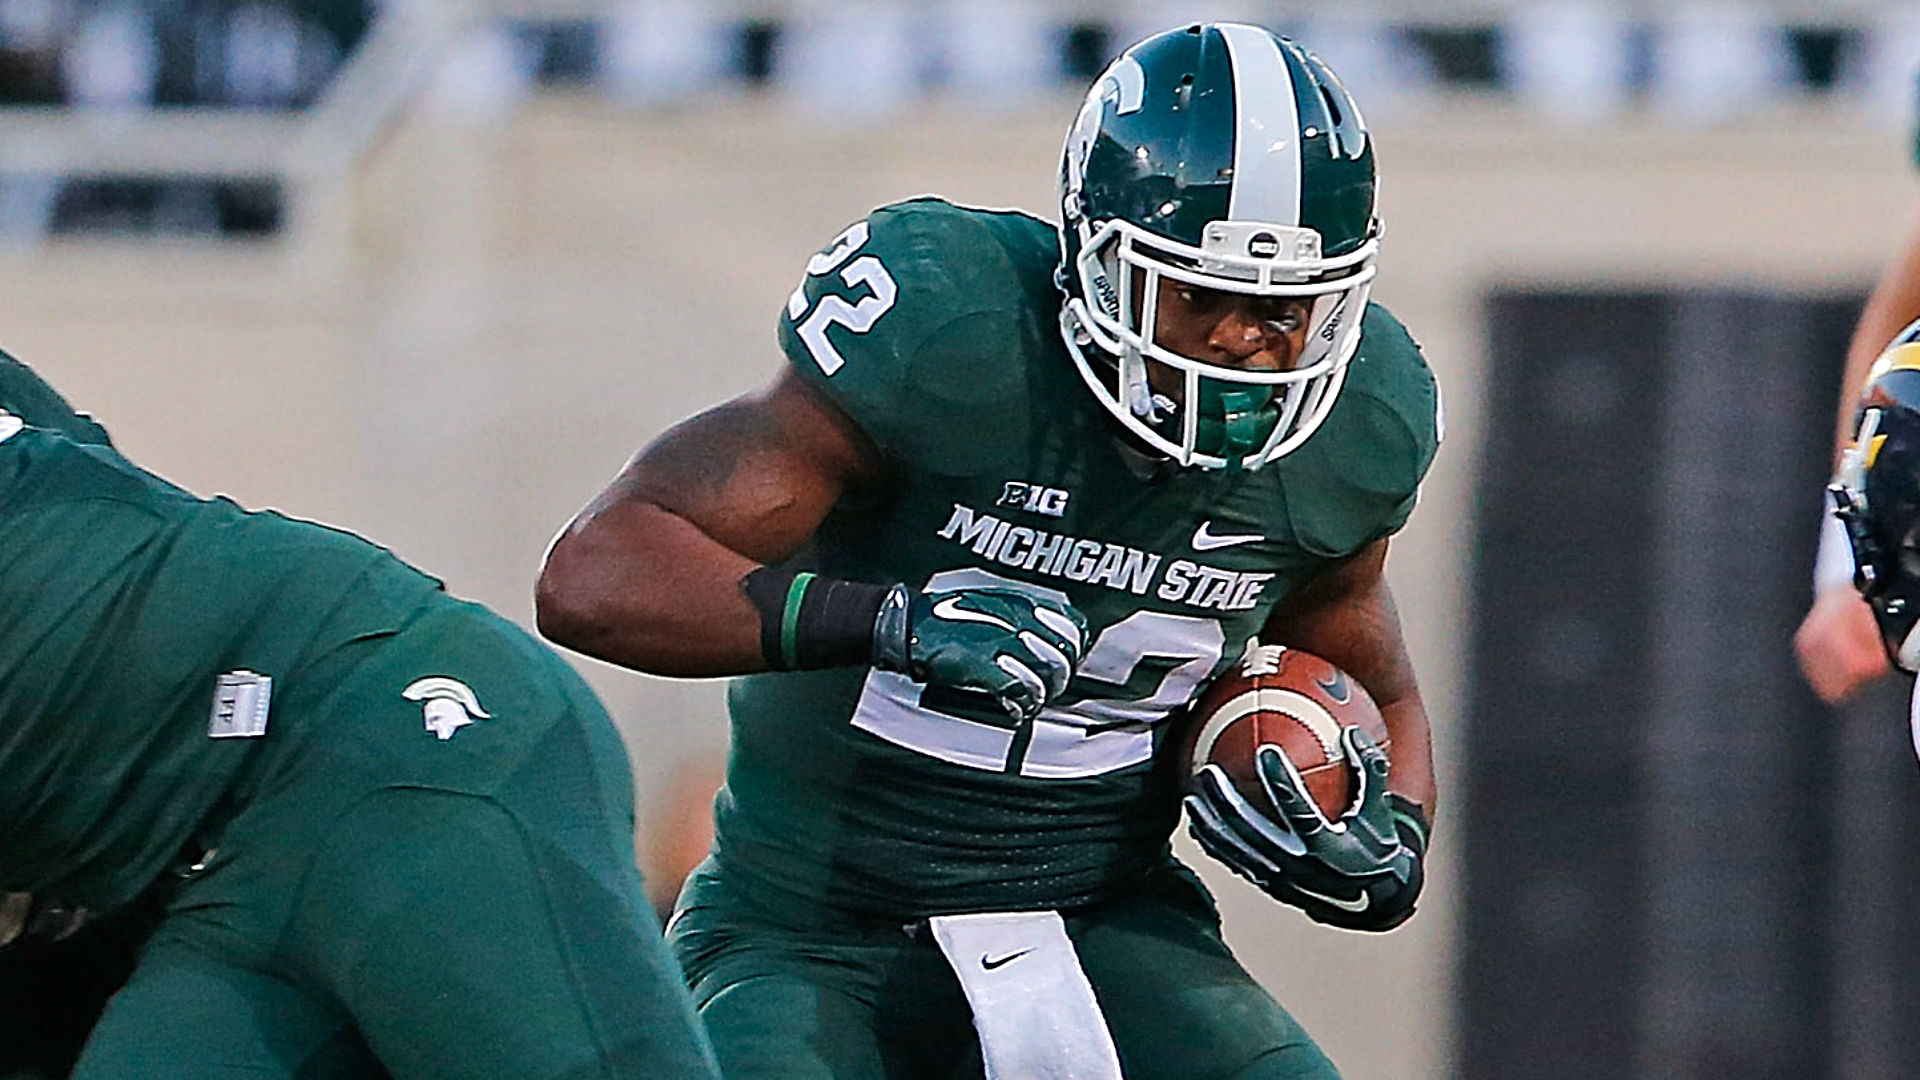 Michigan State RB Delton Williams reinstated after spring gun incident